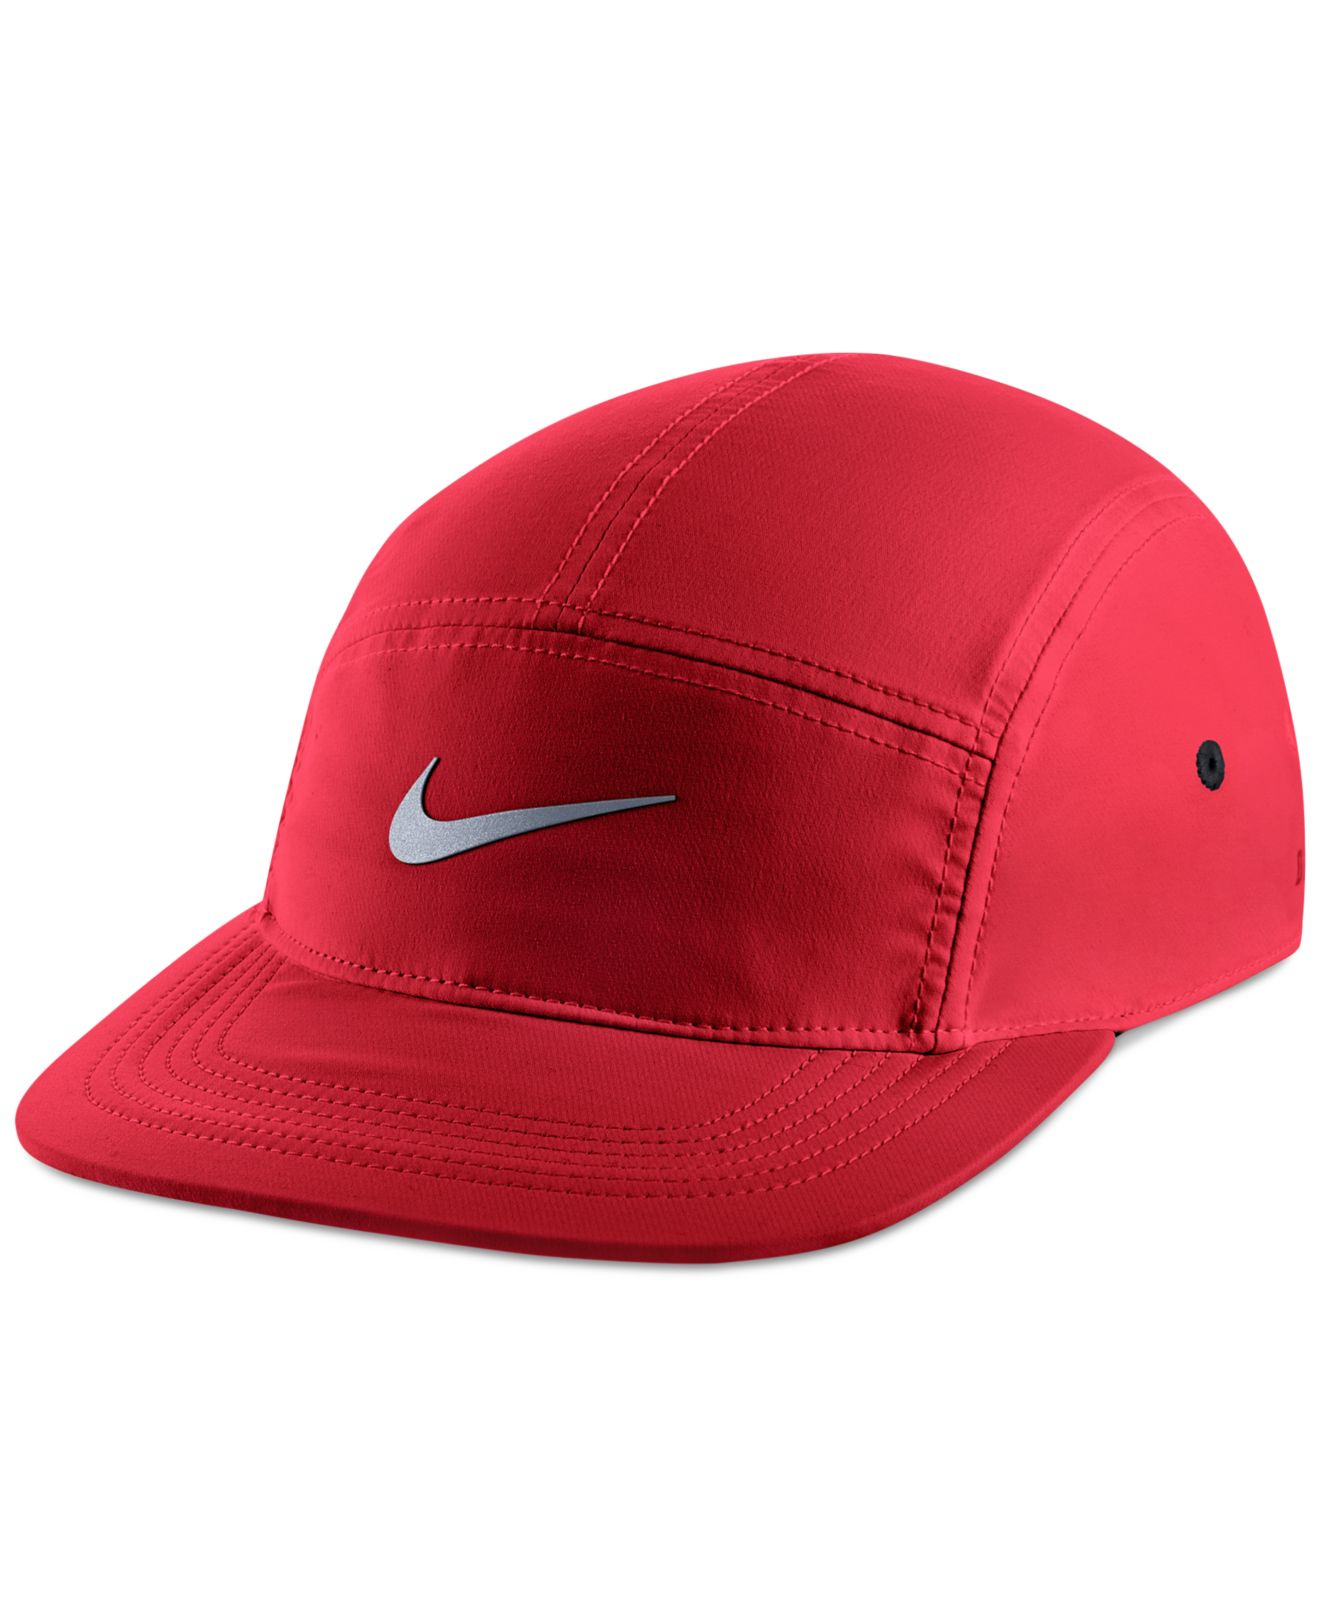 Lyst - Nike Run Aw84 Hat in Red for Men 6f34c9a2e15